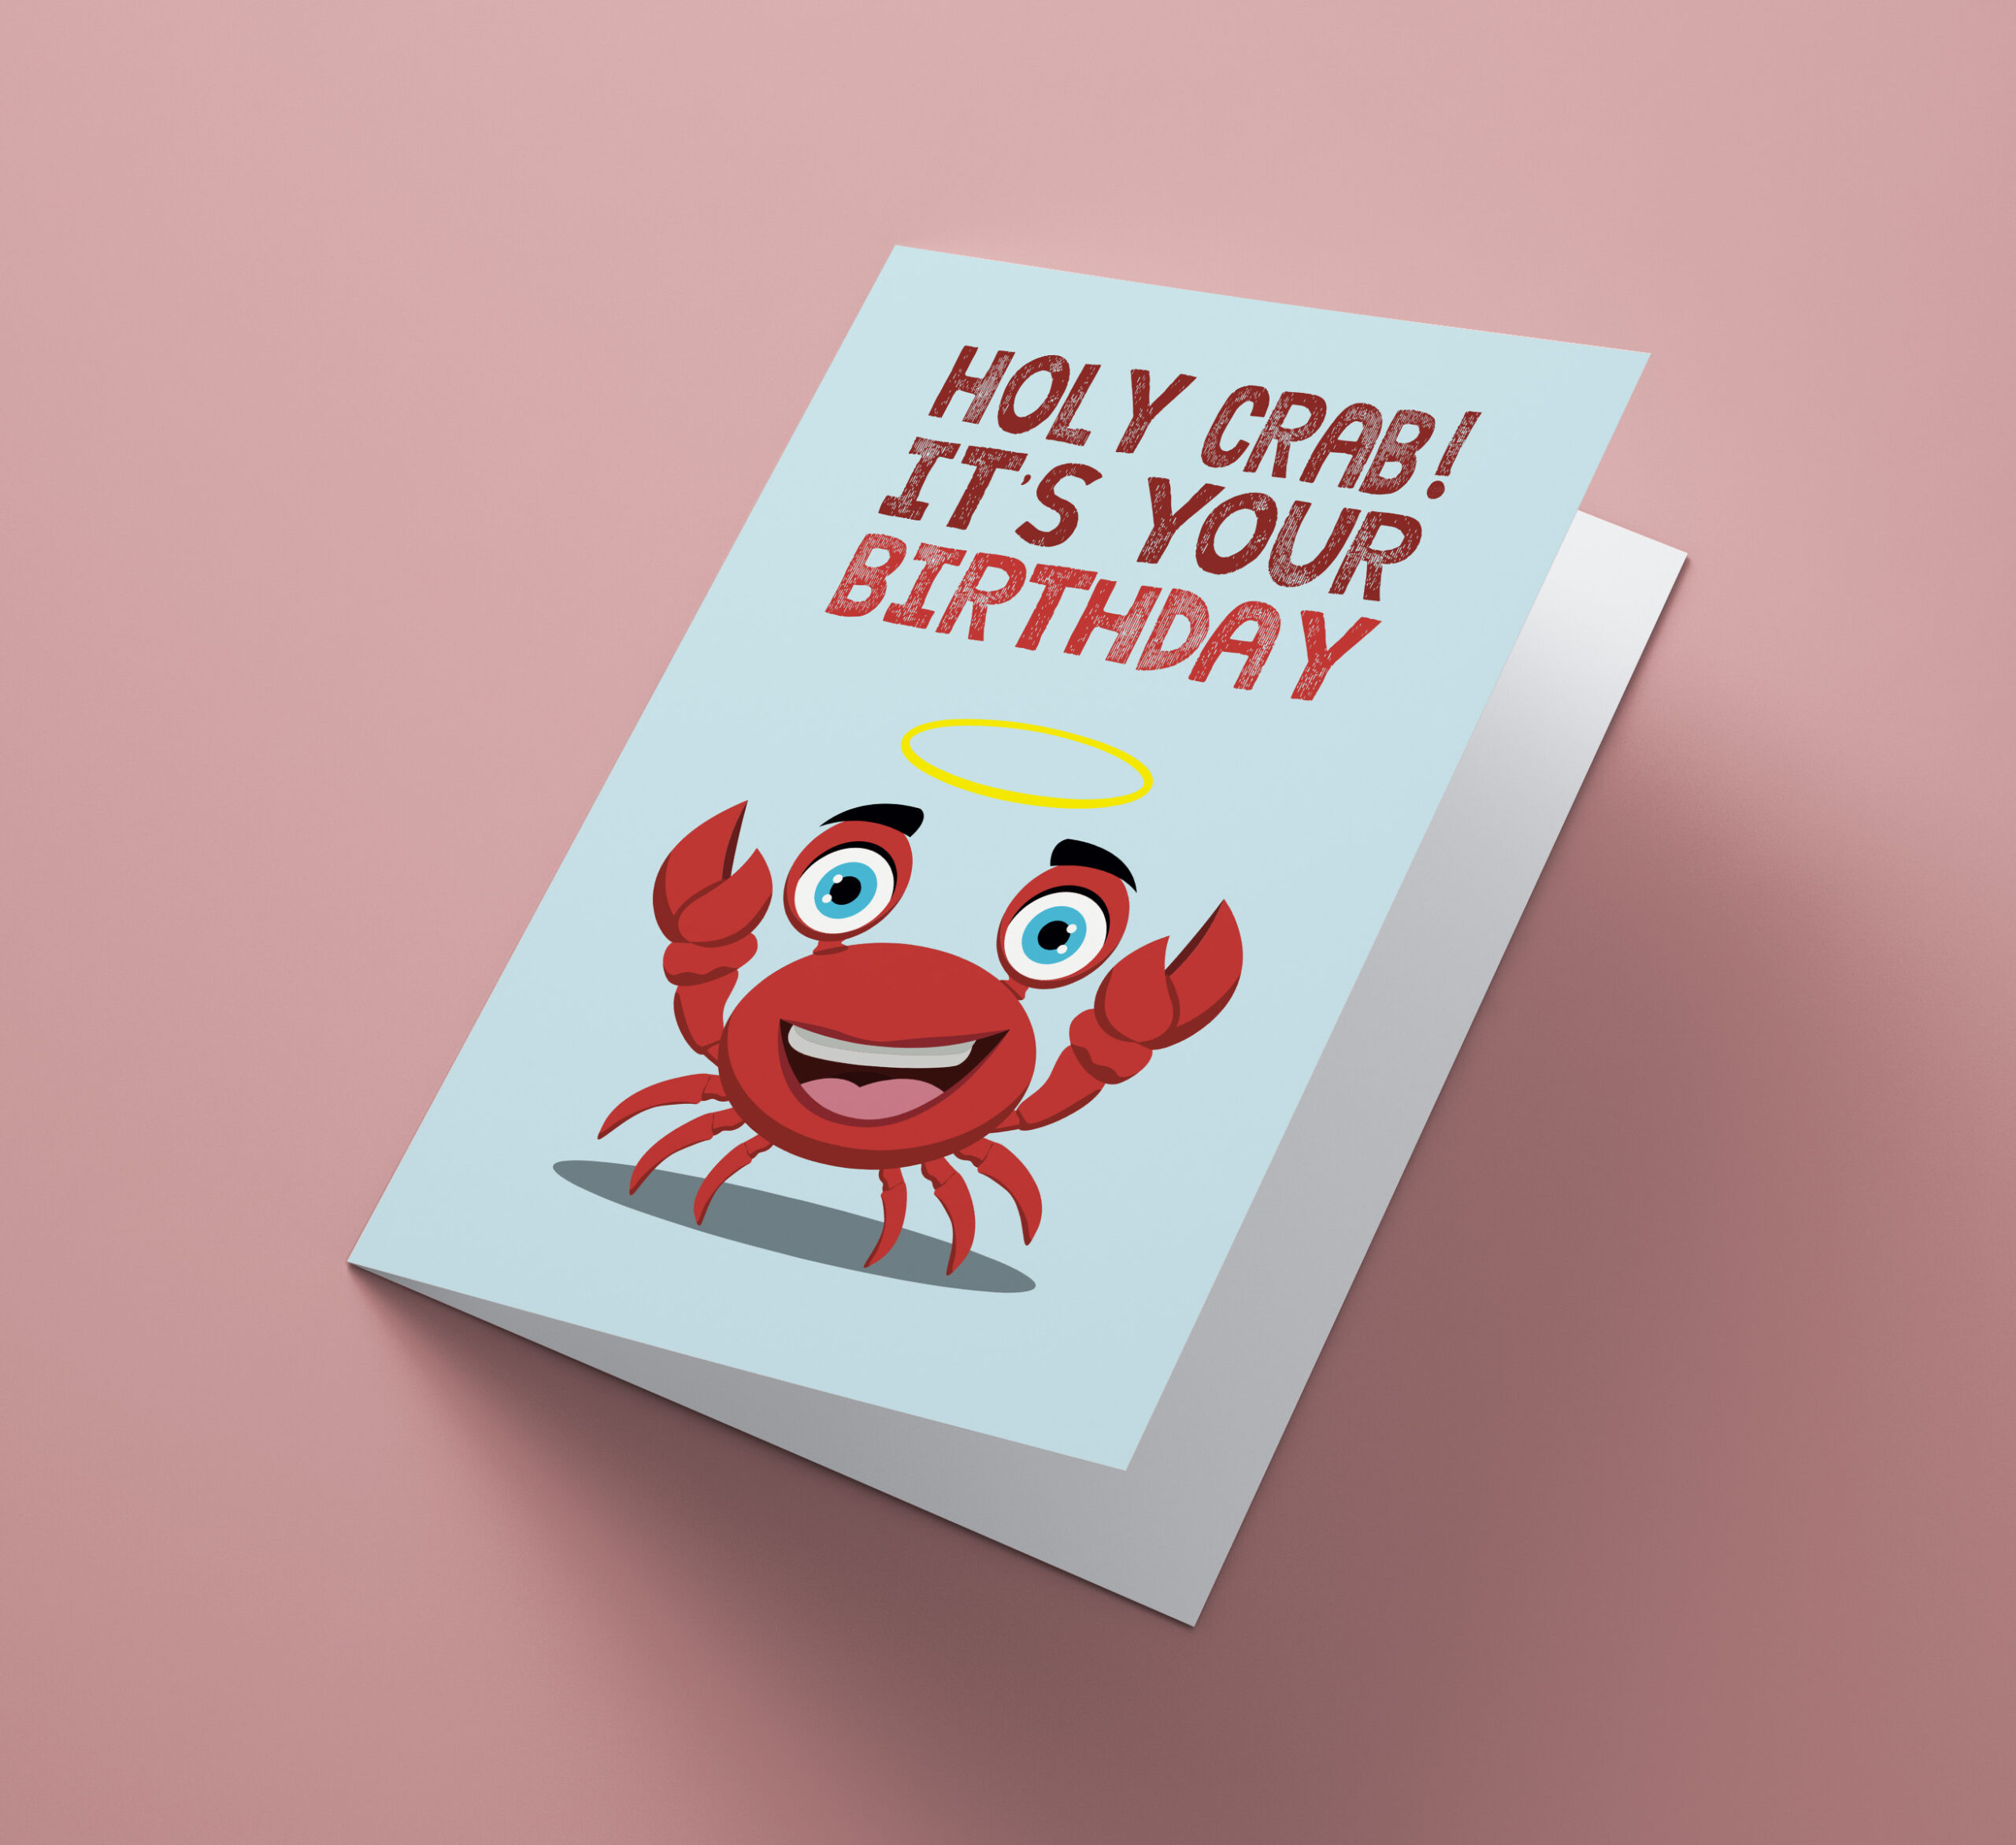 Holy Crab! It's Your Birthday